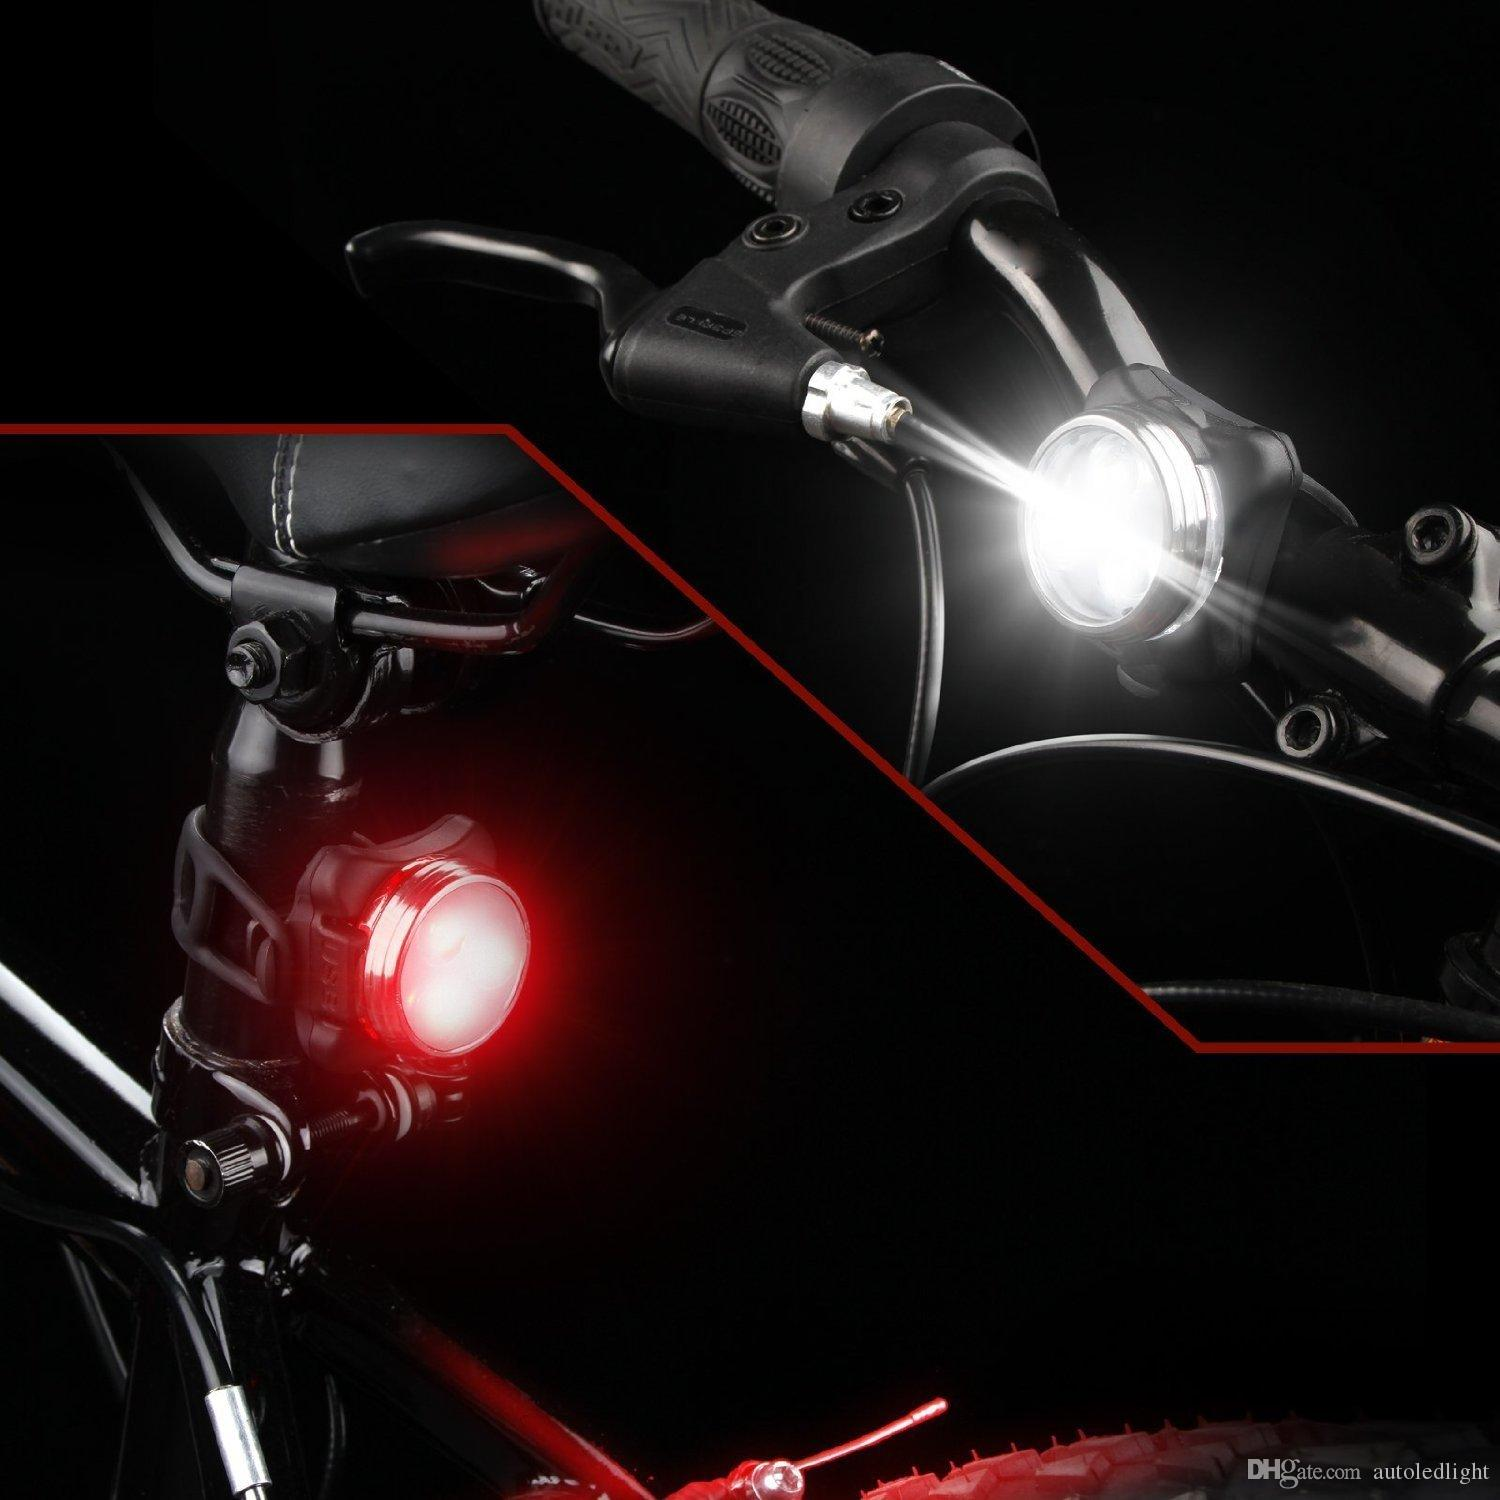 Lighting Rechargeable Headlight Taillight Combinations,Includes Front and Rear Bicycle Light Set, Bike Lights,2 USB Cables,4 Modes, 350lm,Water